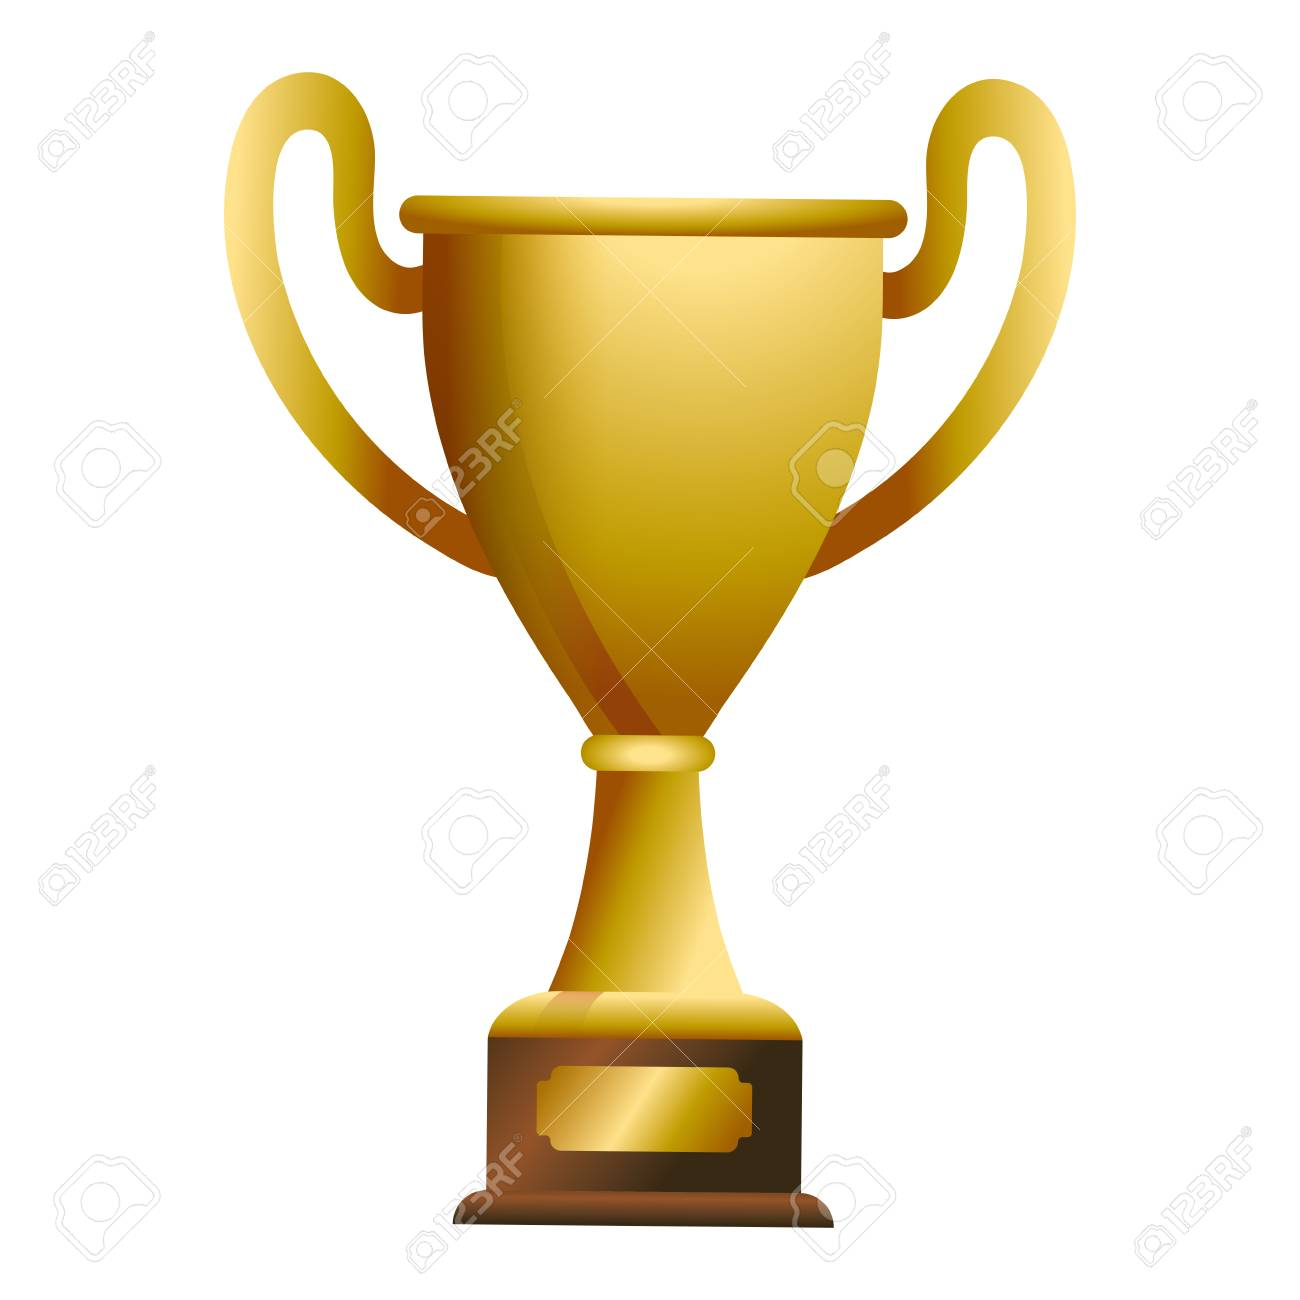 Trophy cup award on wooden box vector illustration graphic design vector illustration graphic design - 124831965